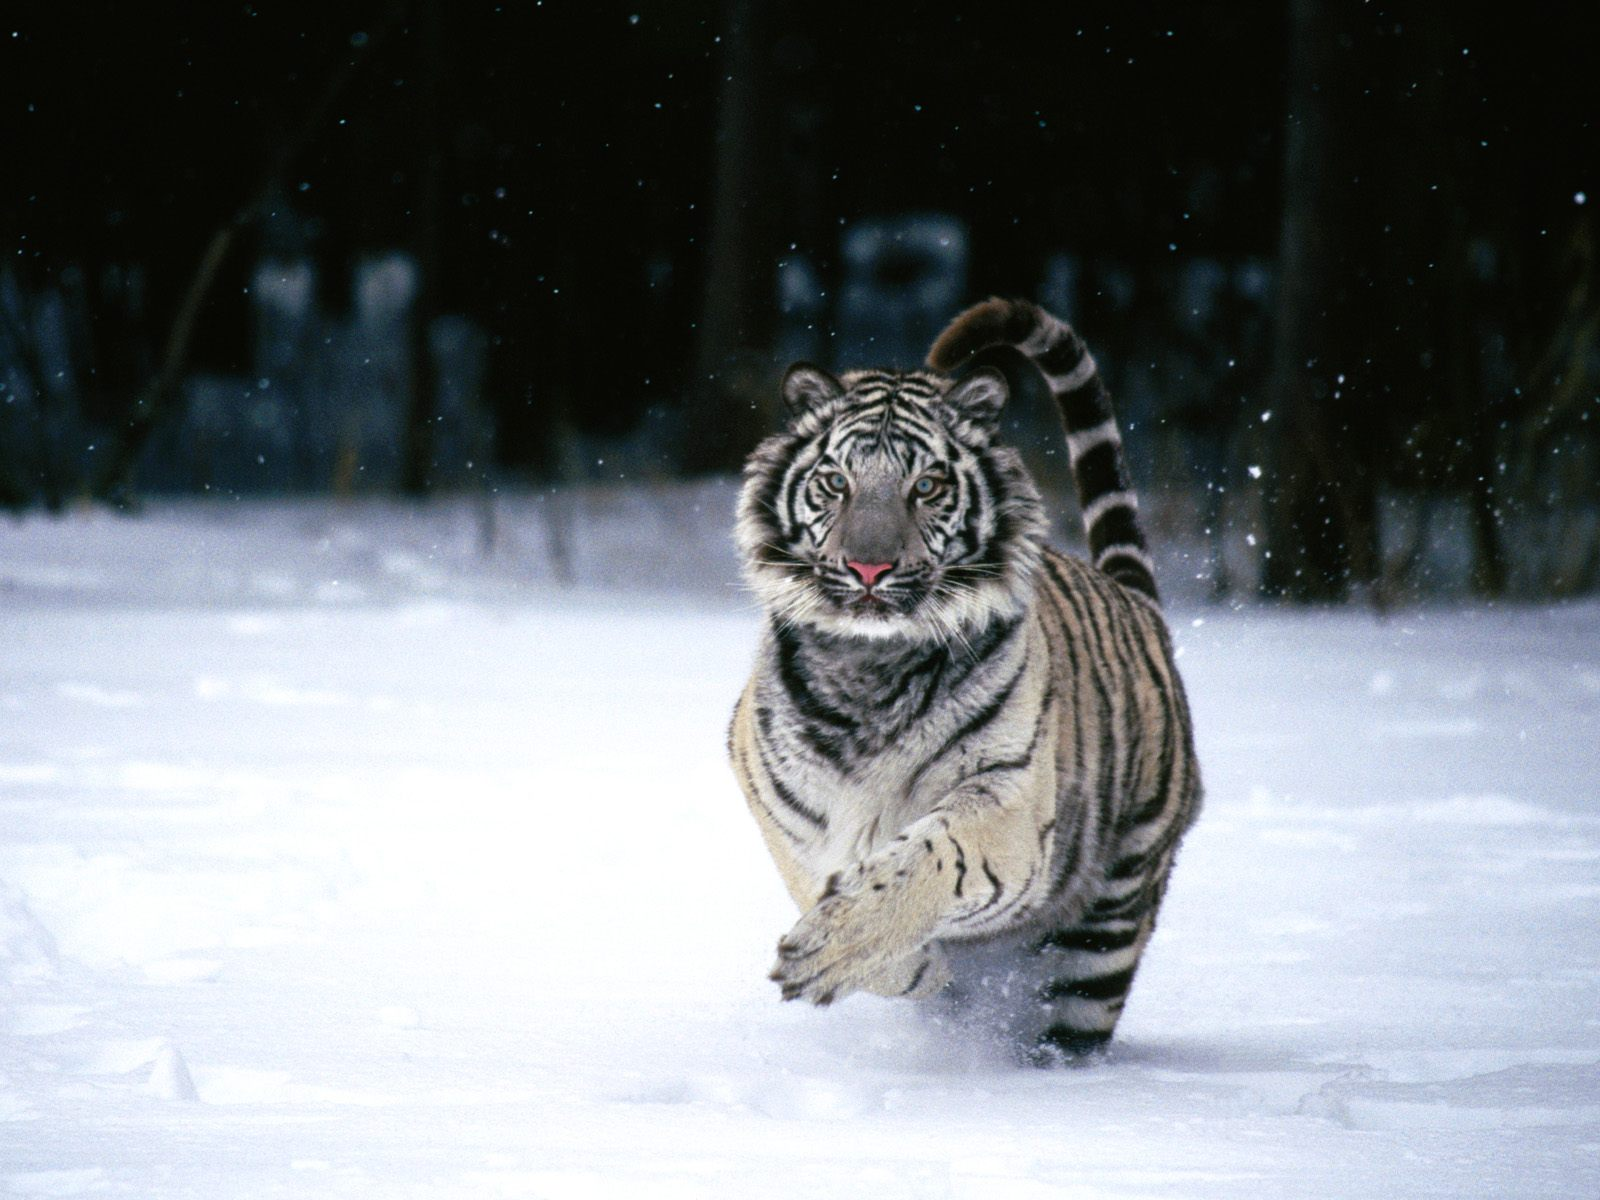 White Tiger 367.89 Kb